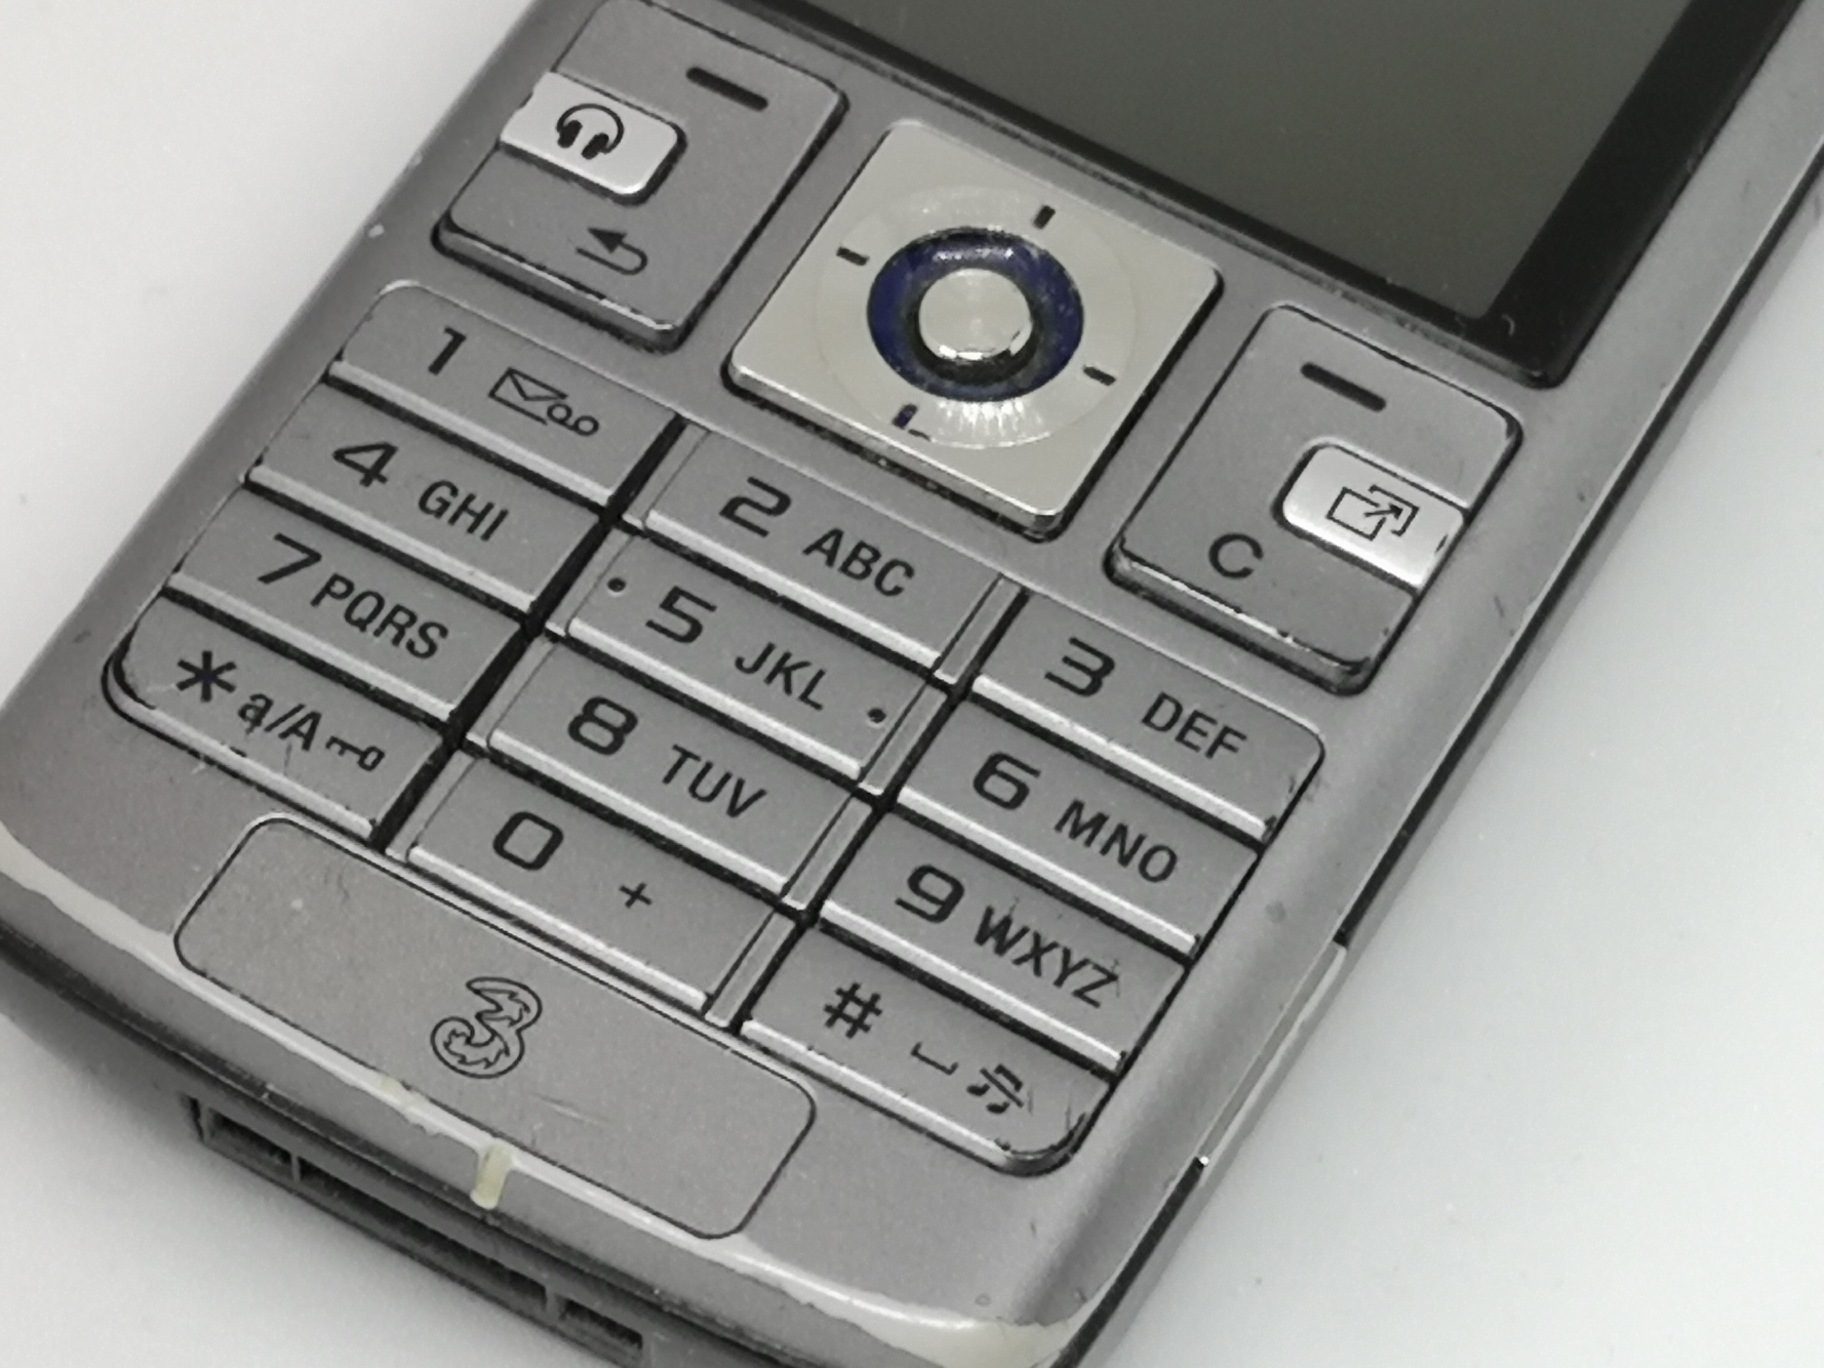 Sony Ericsson K610 Review: Small and Light 3G Mobile Phone